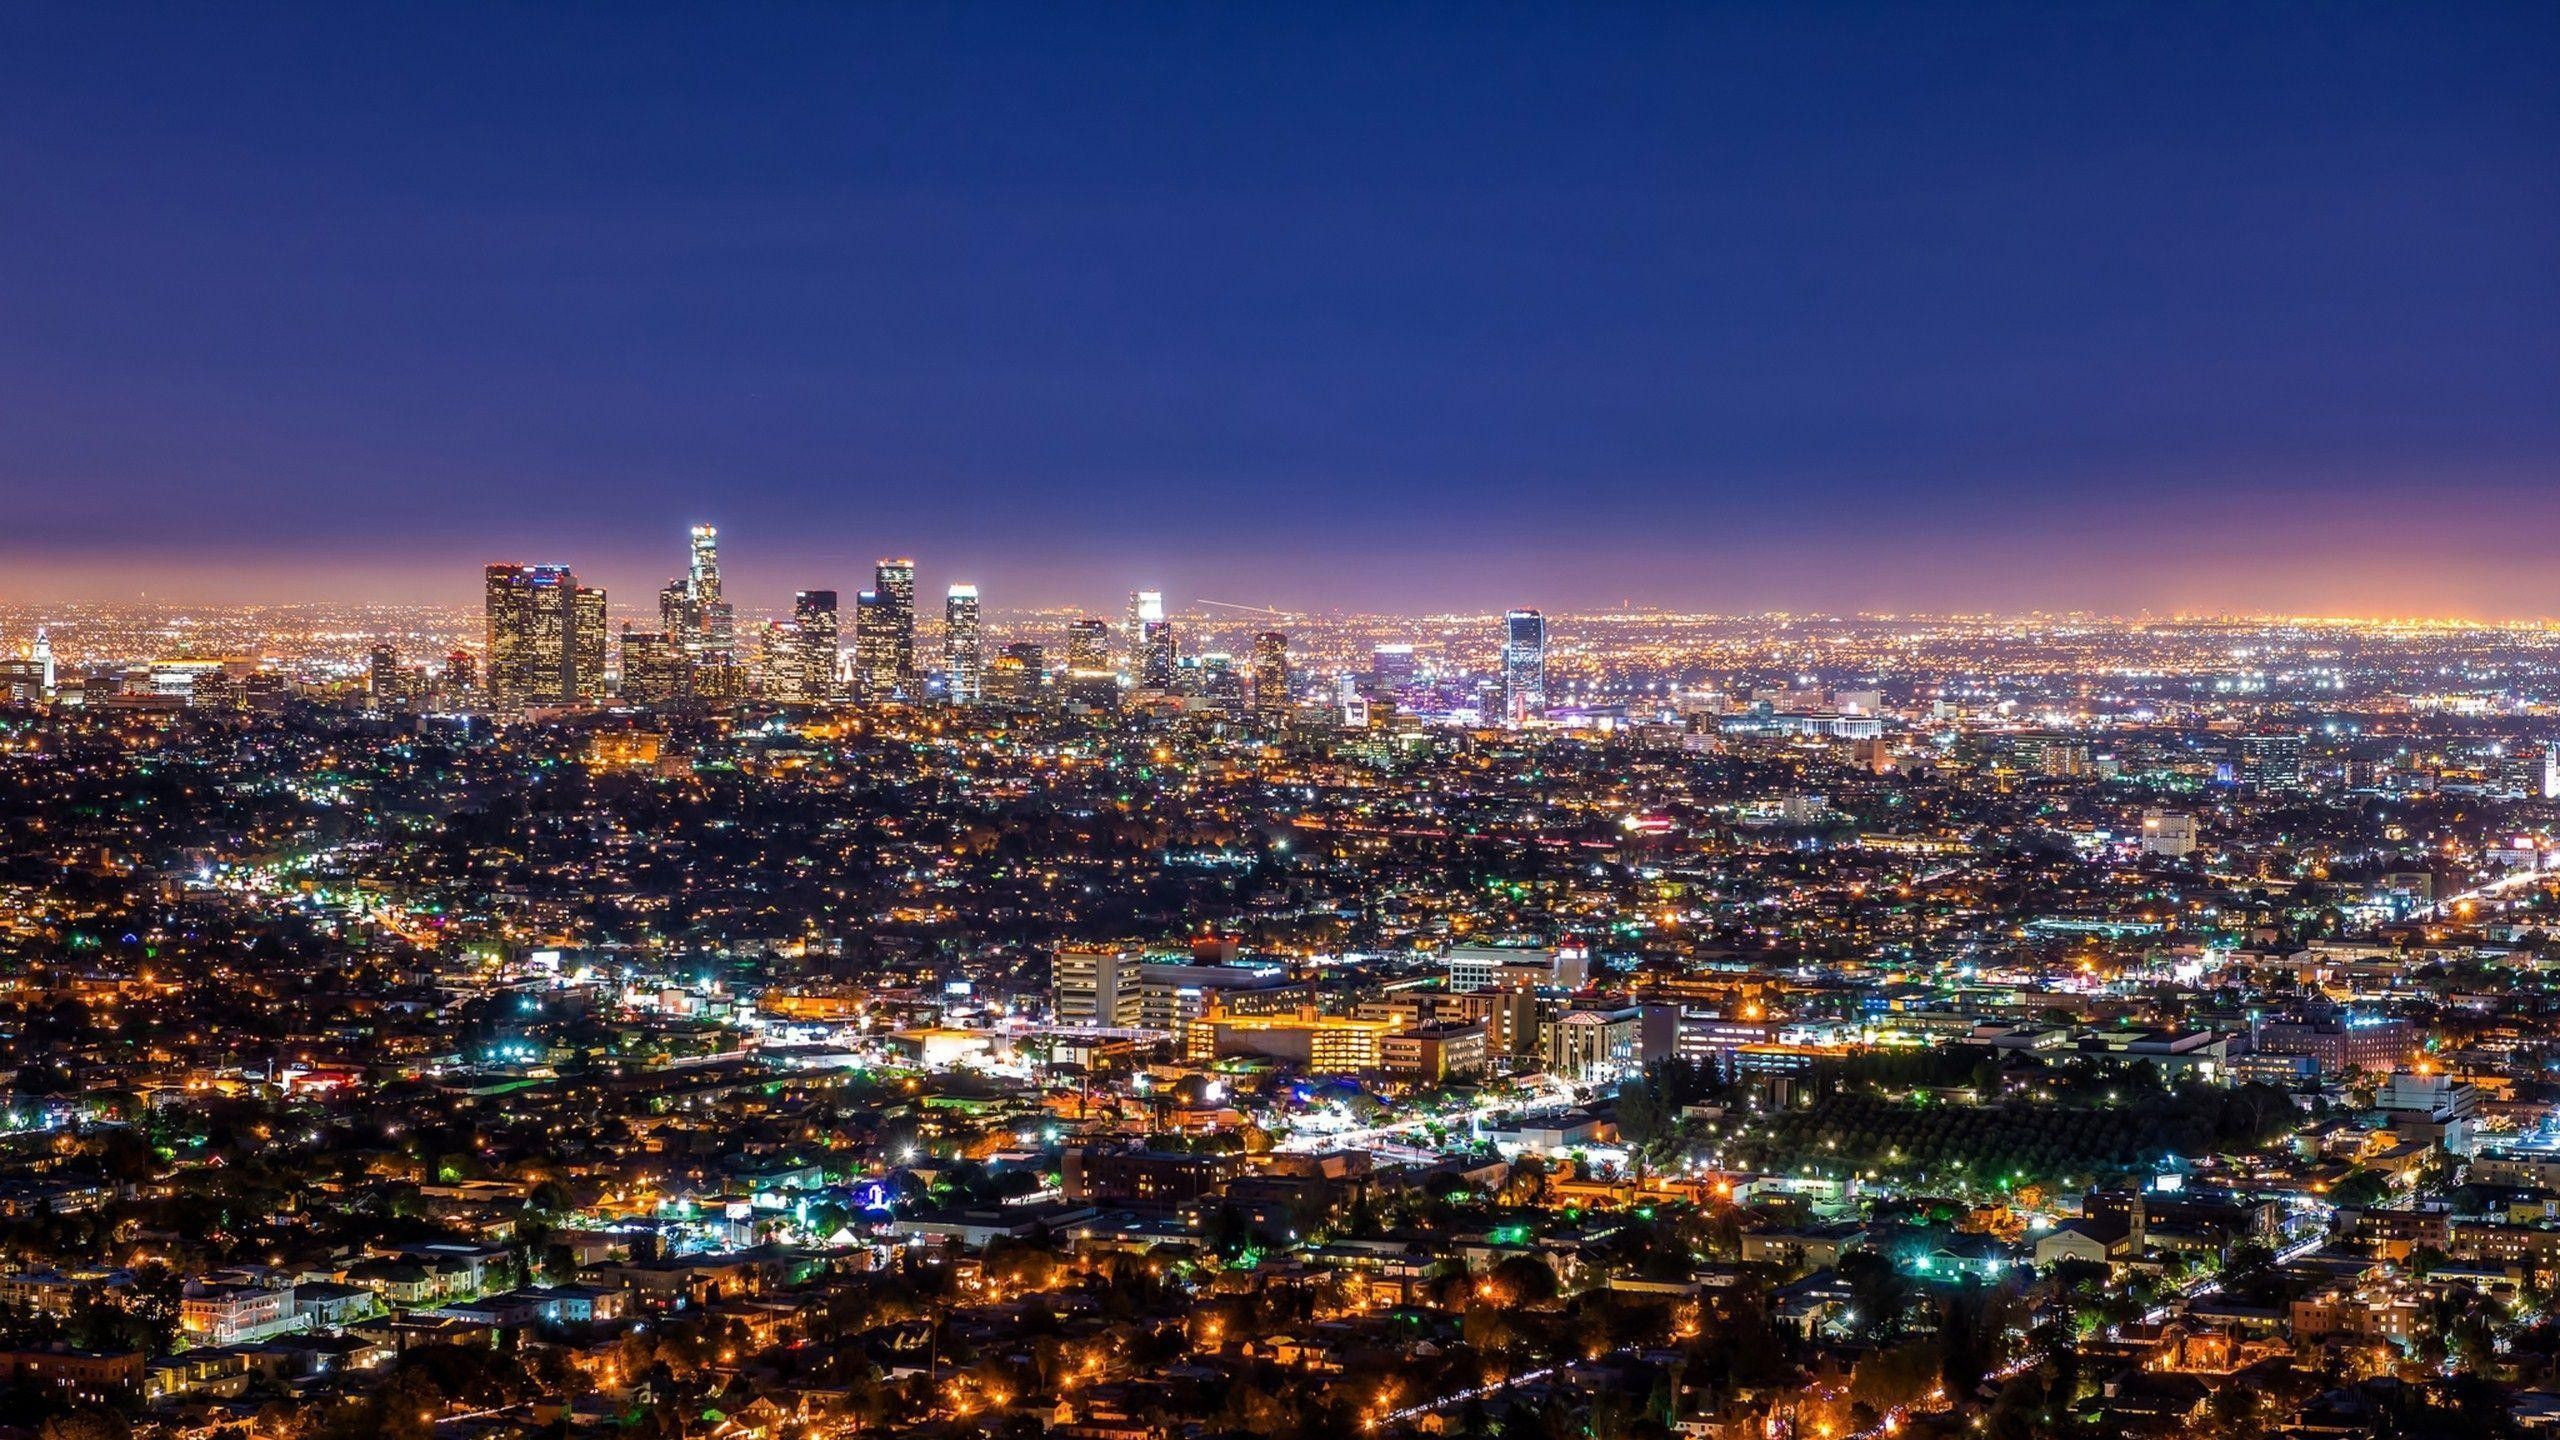 Fresh Los Angeles Wallpaper 4k Di 2020